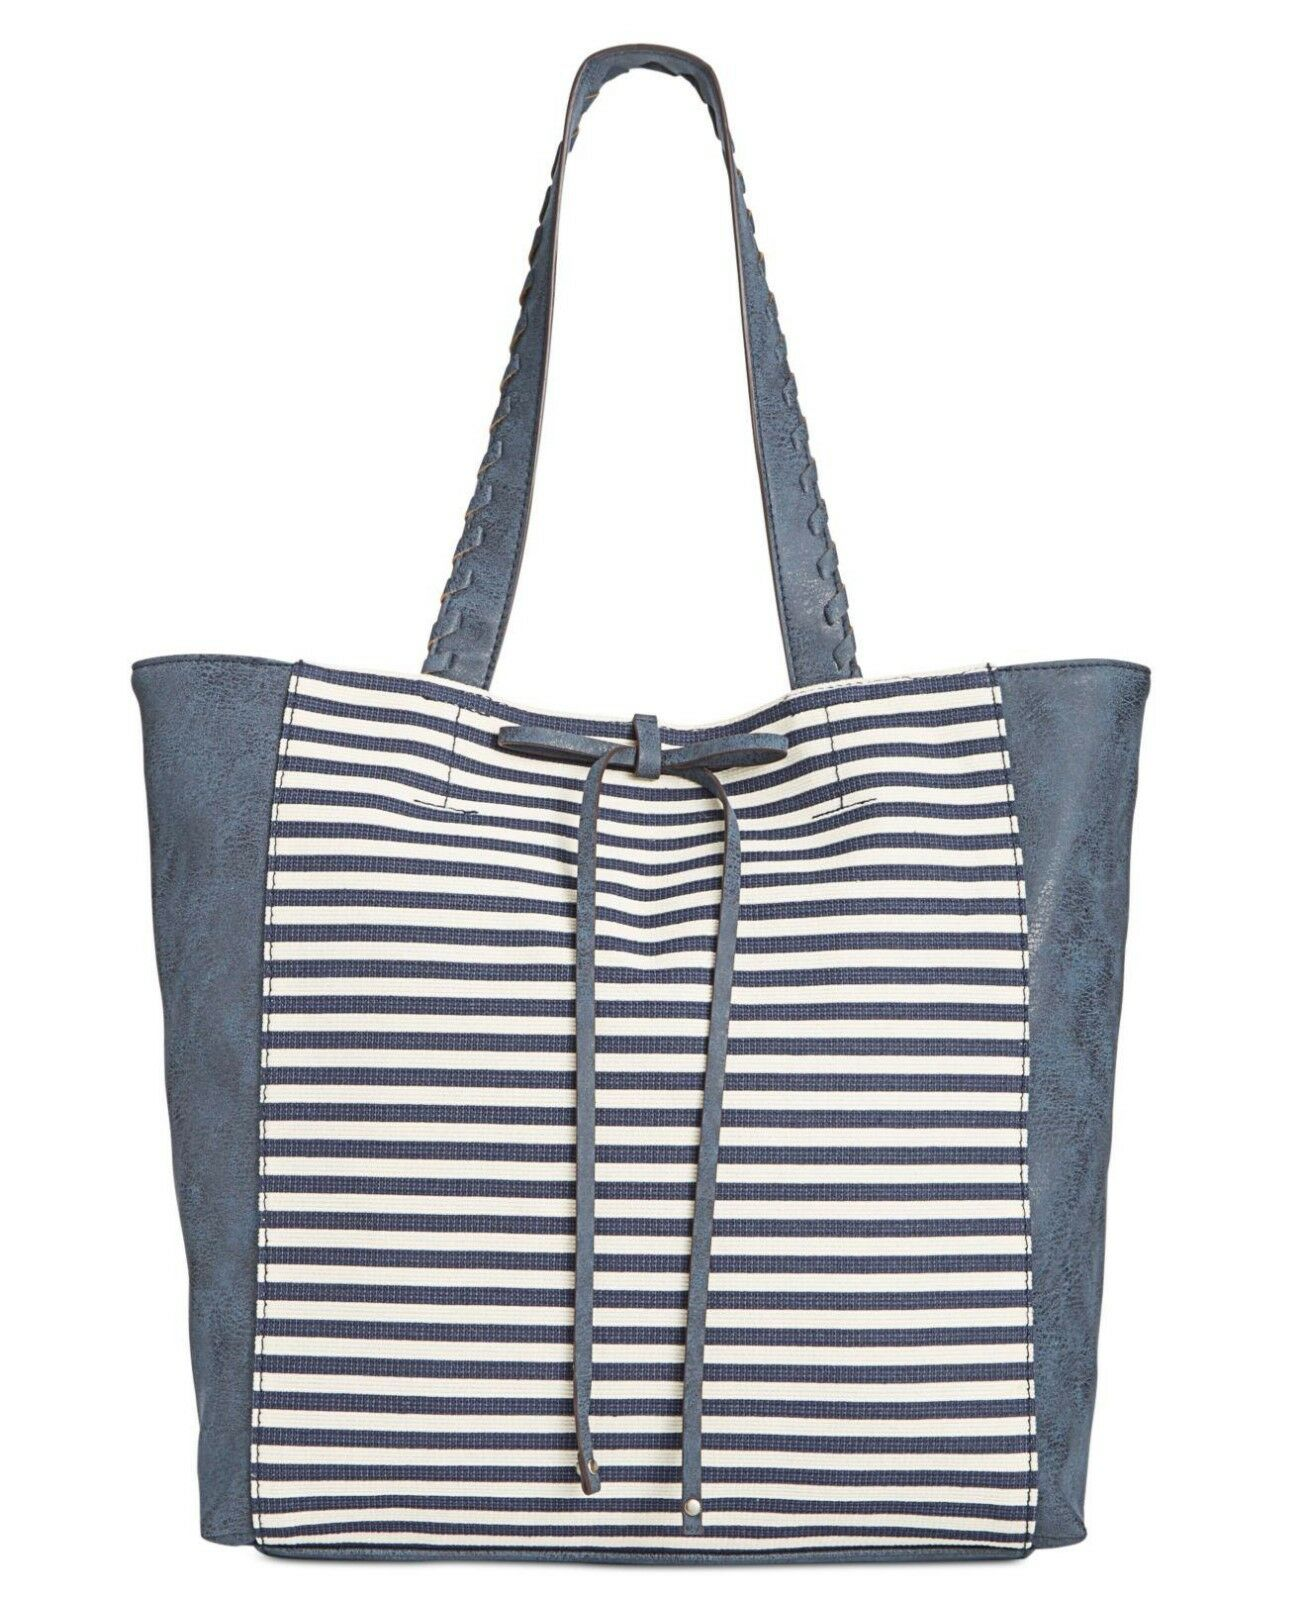 Style & Co Airyell Canvas Tote Blue, MSRP